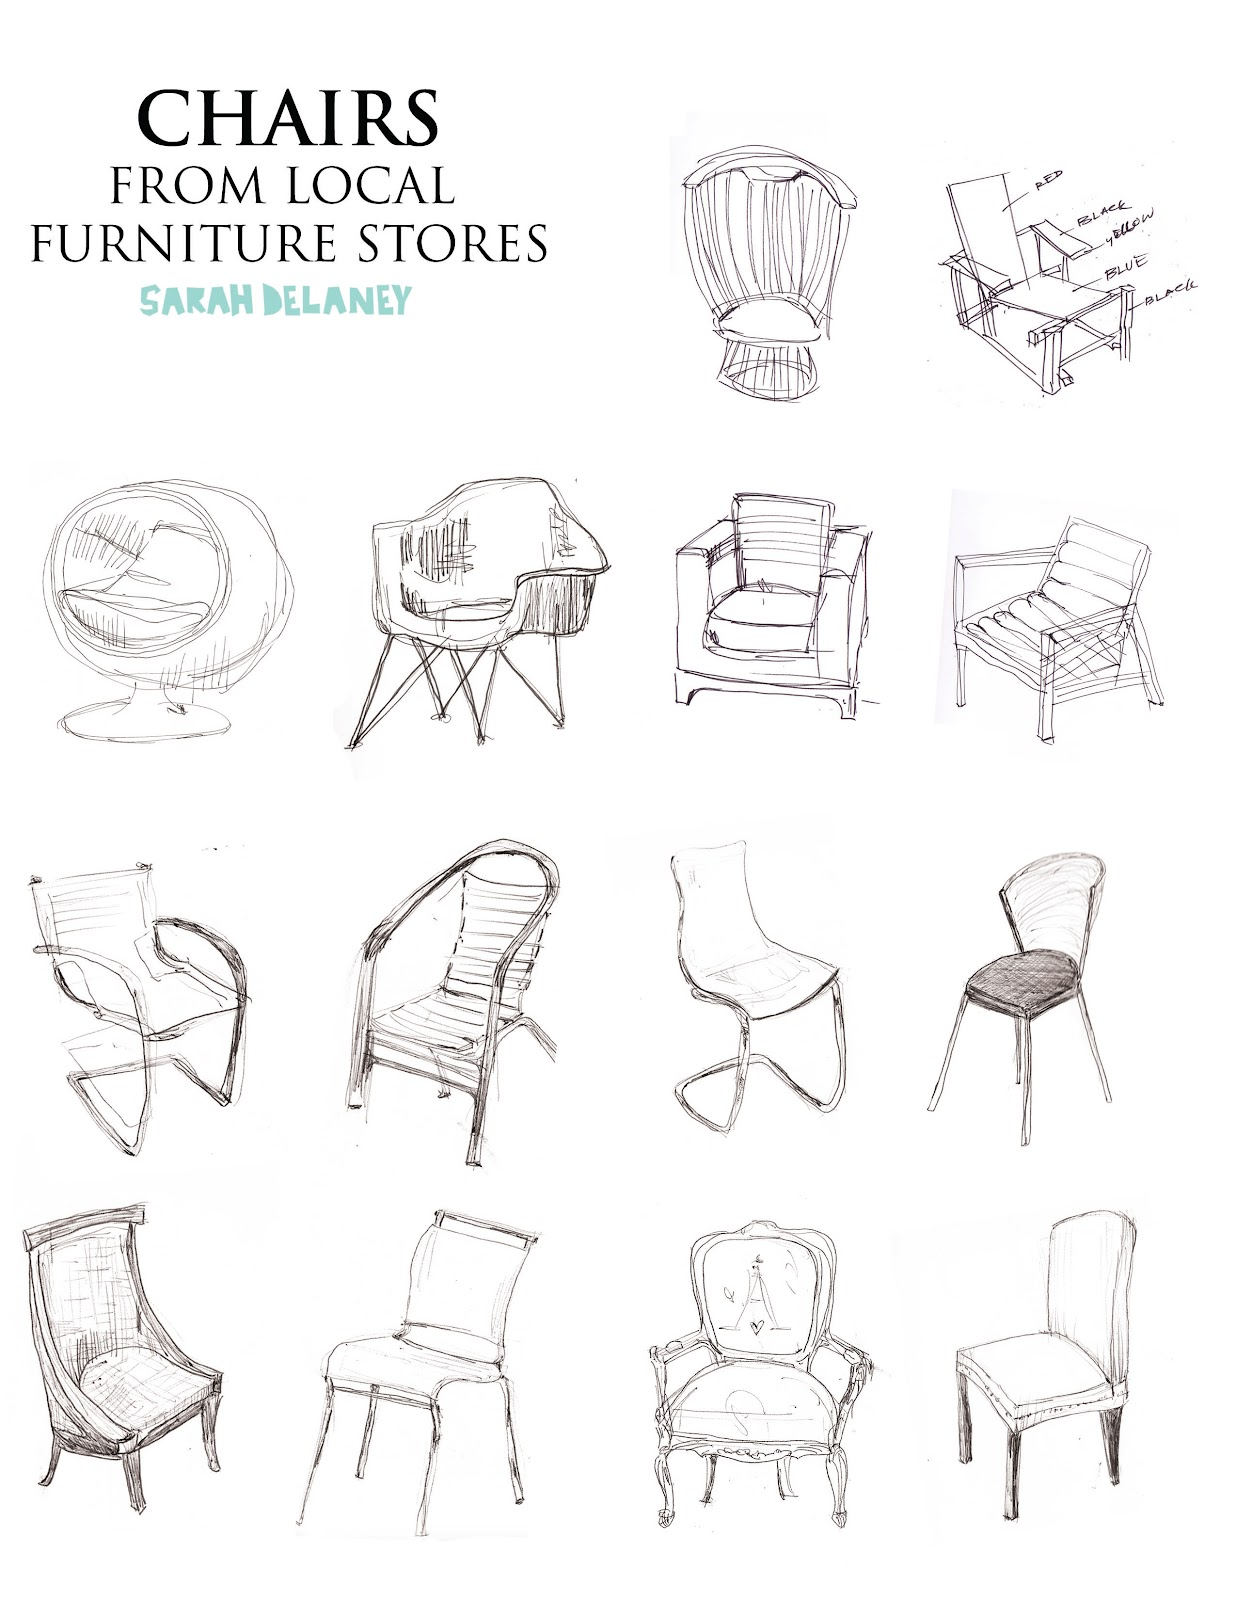 Interior design sketches interior design for Furniture design sketches